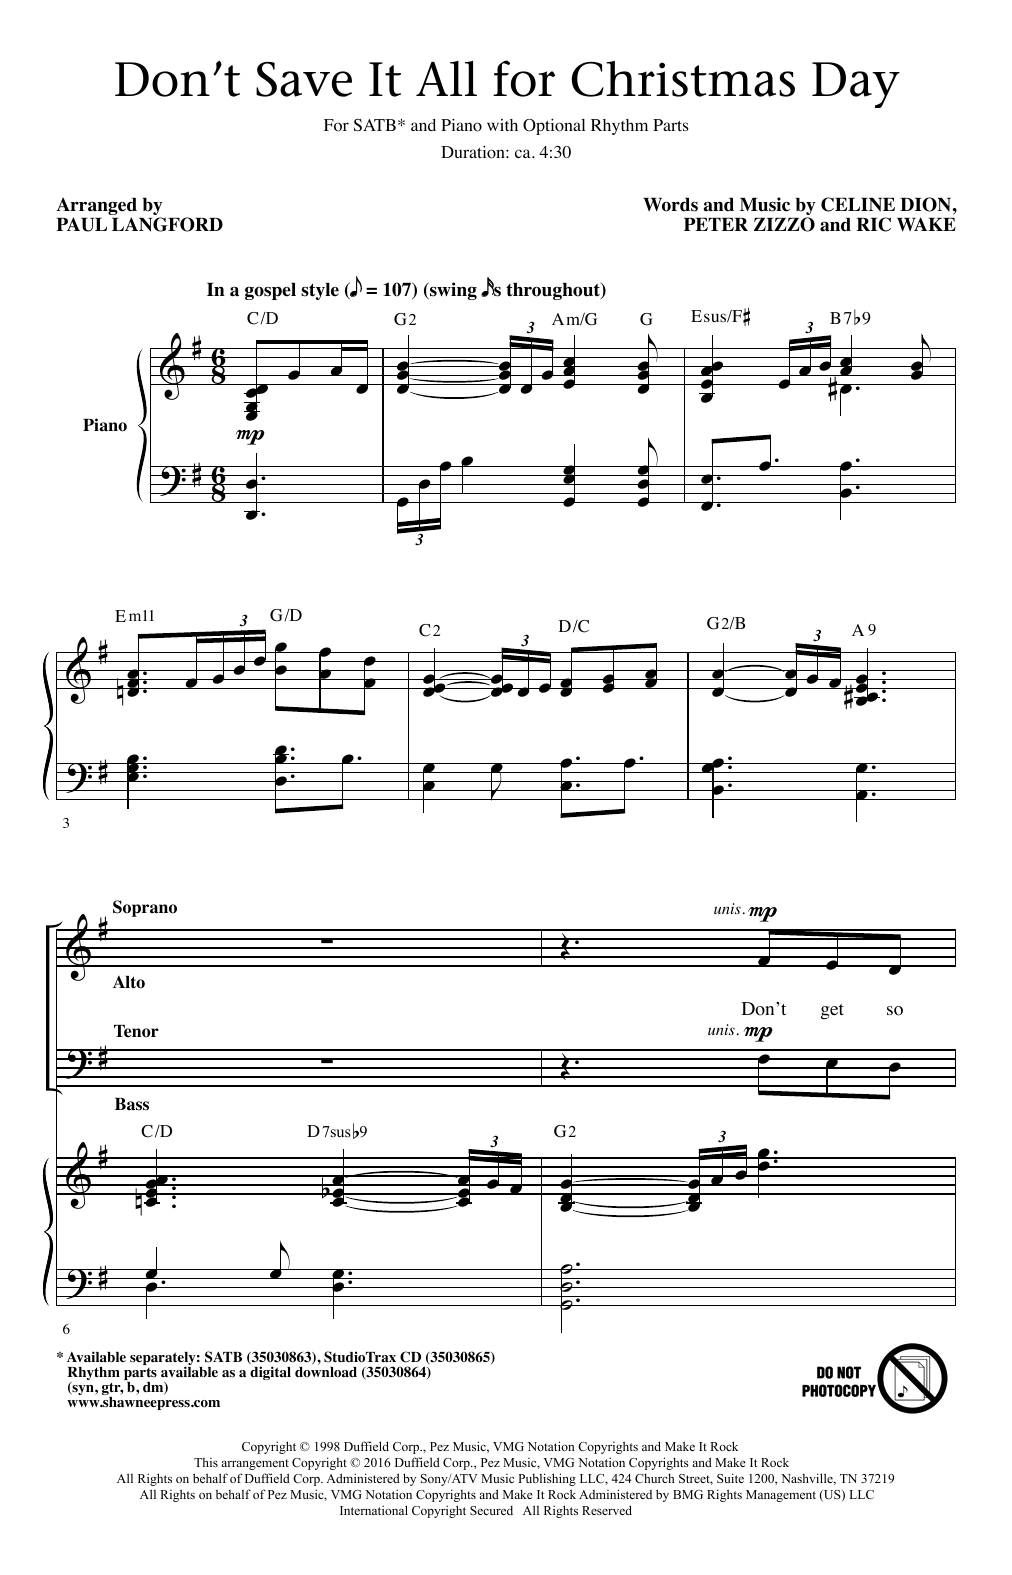 Don't Save It All For Christmas Day Sheet Music